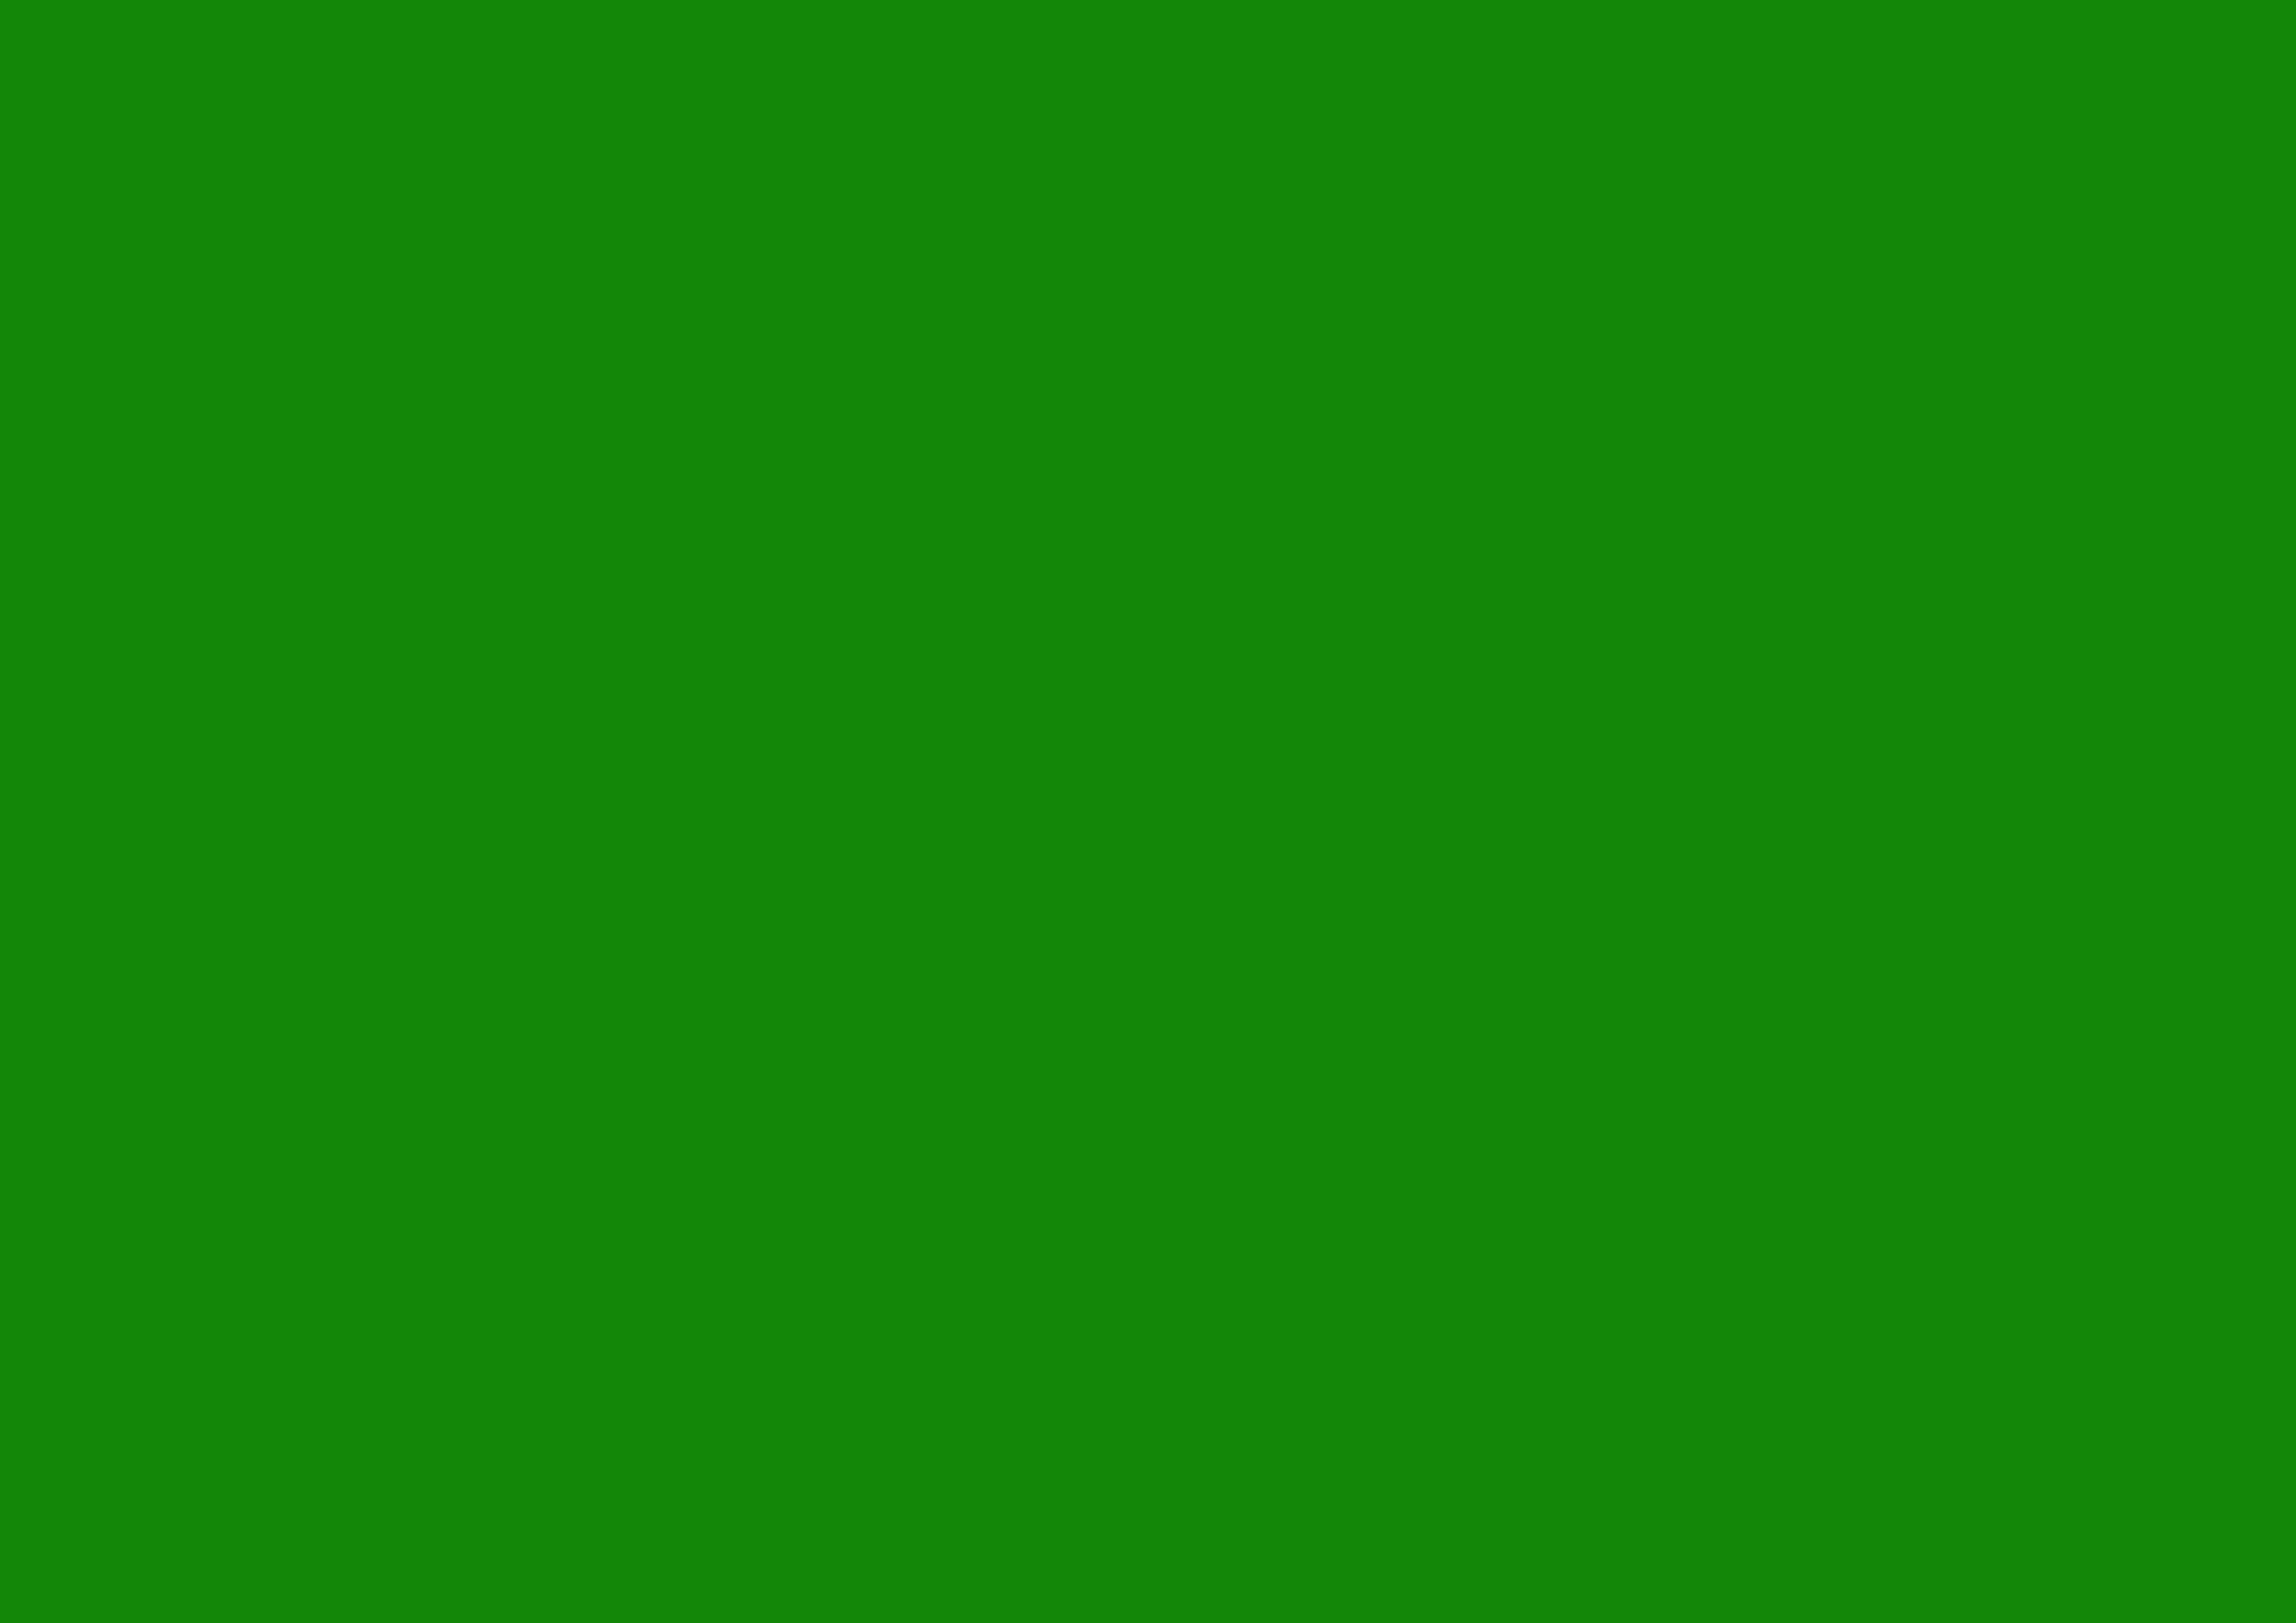 3508x2480 India Green Solid Color Background